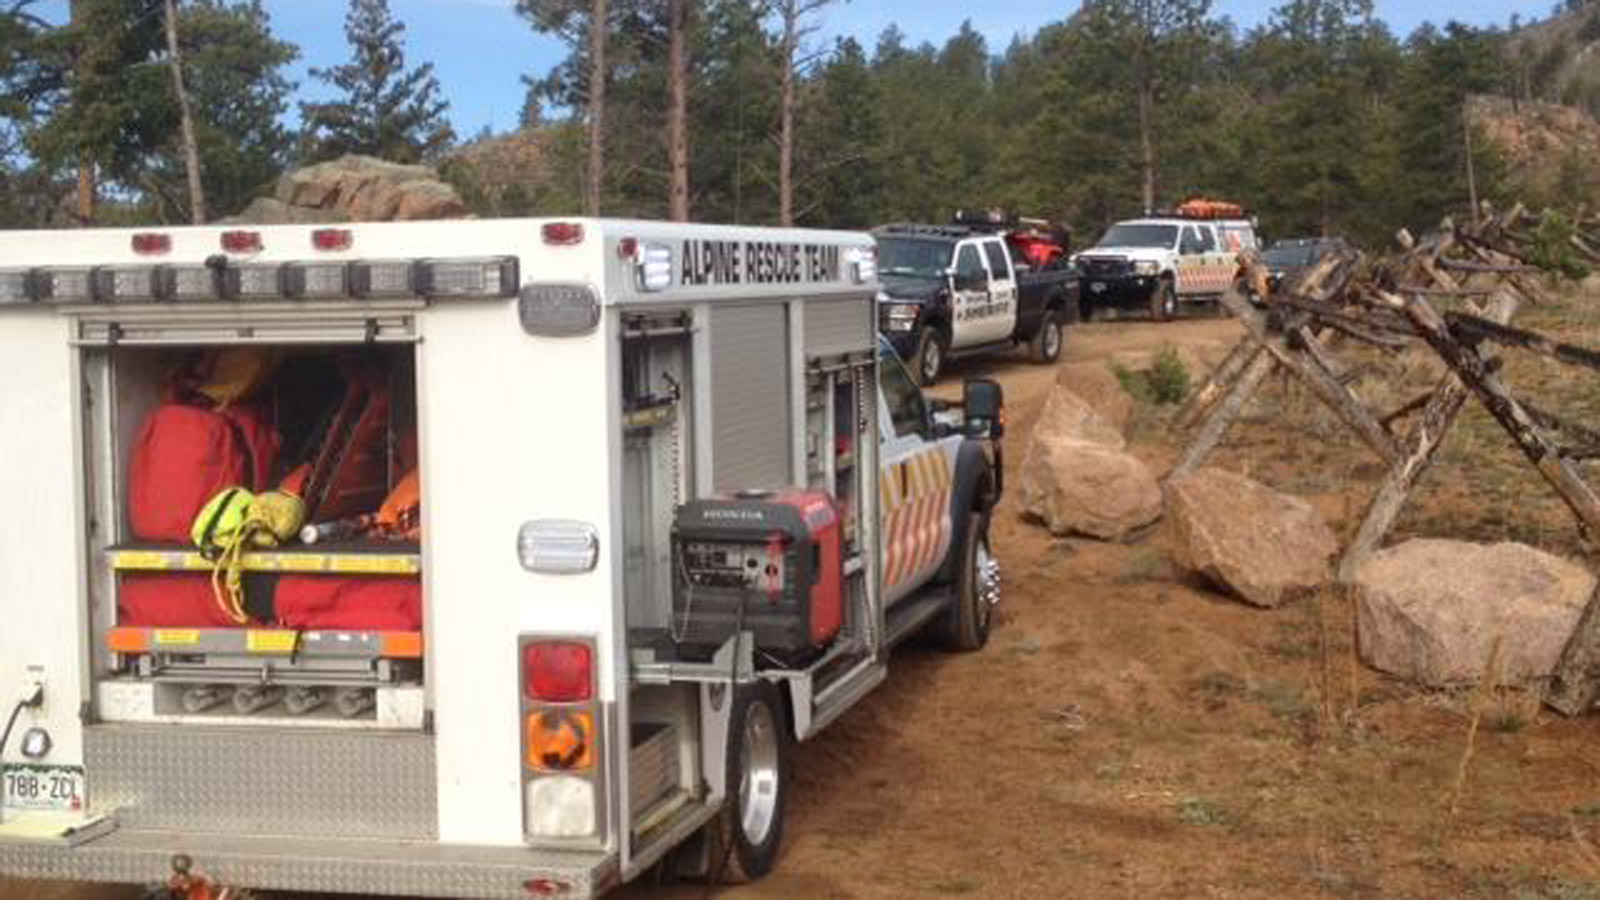 Search crews prepare to search for missing hiker Nicholas Coates (credit: Jeffco Sheriff)